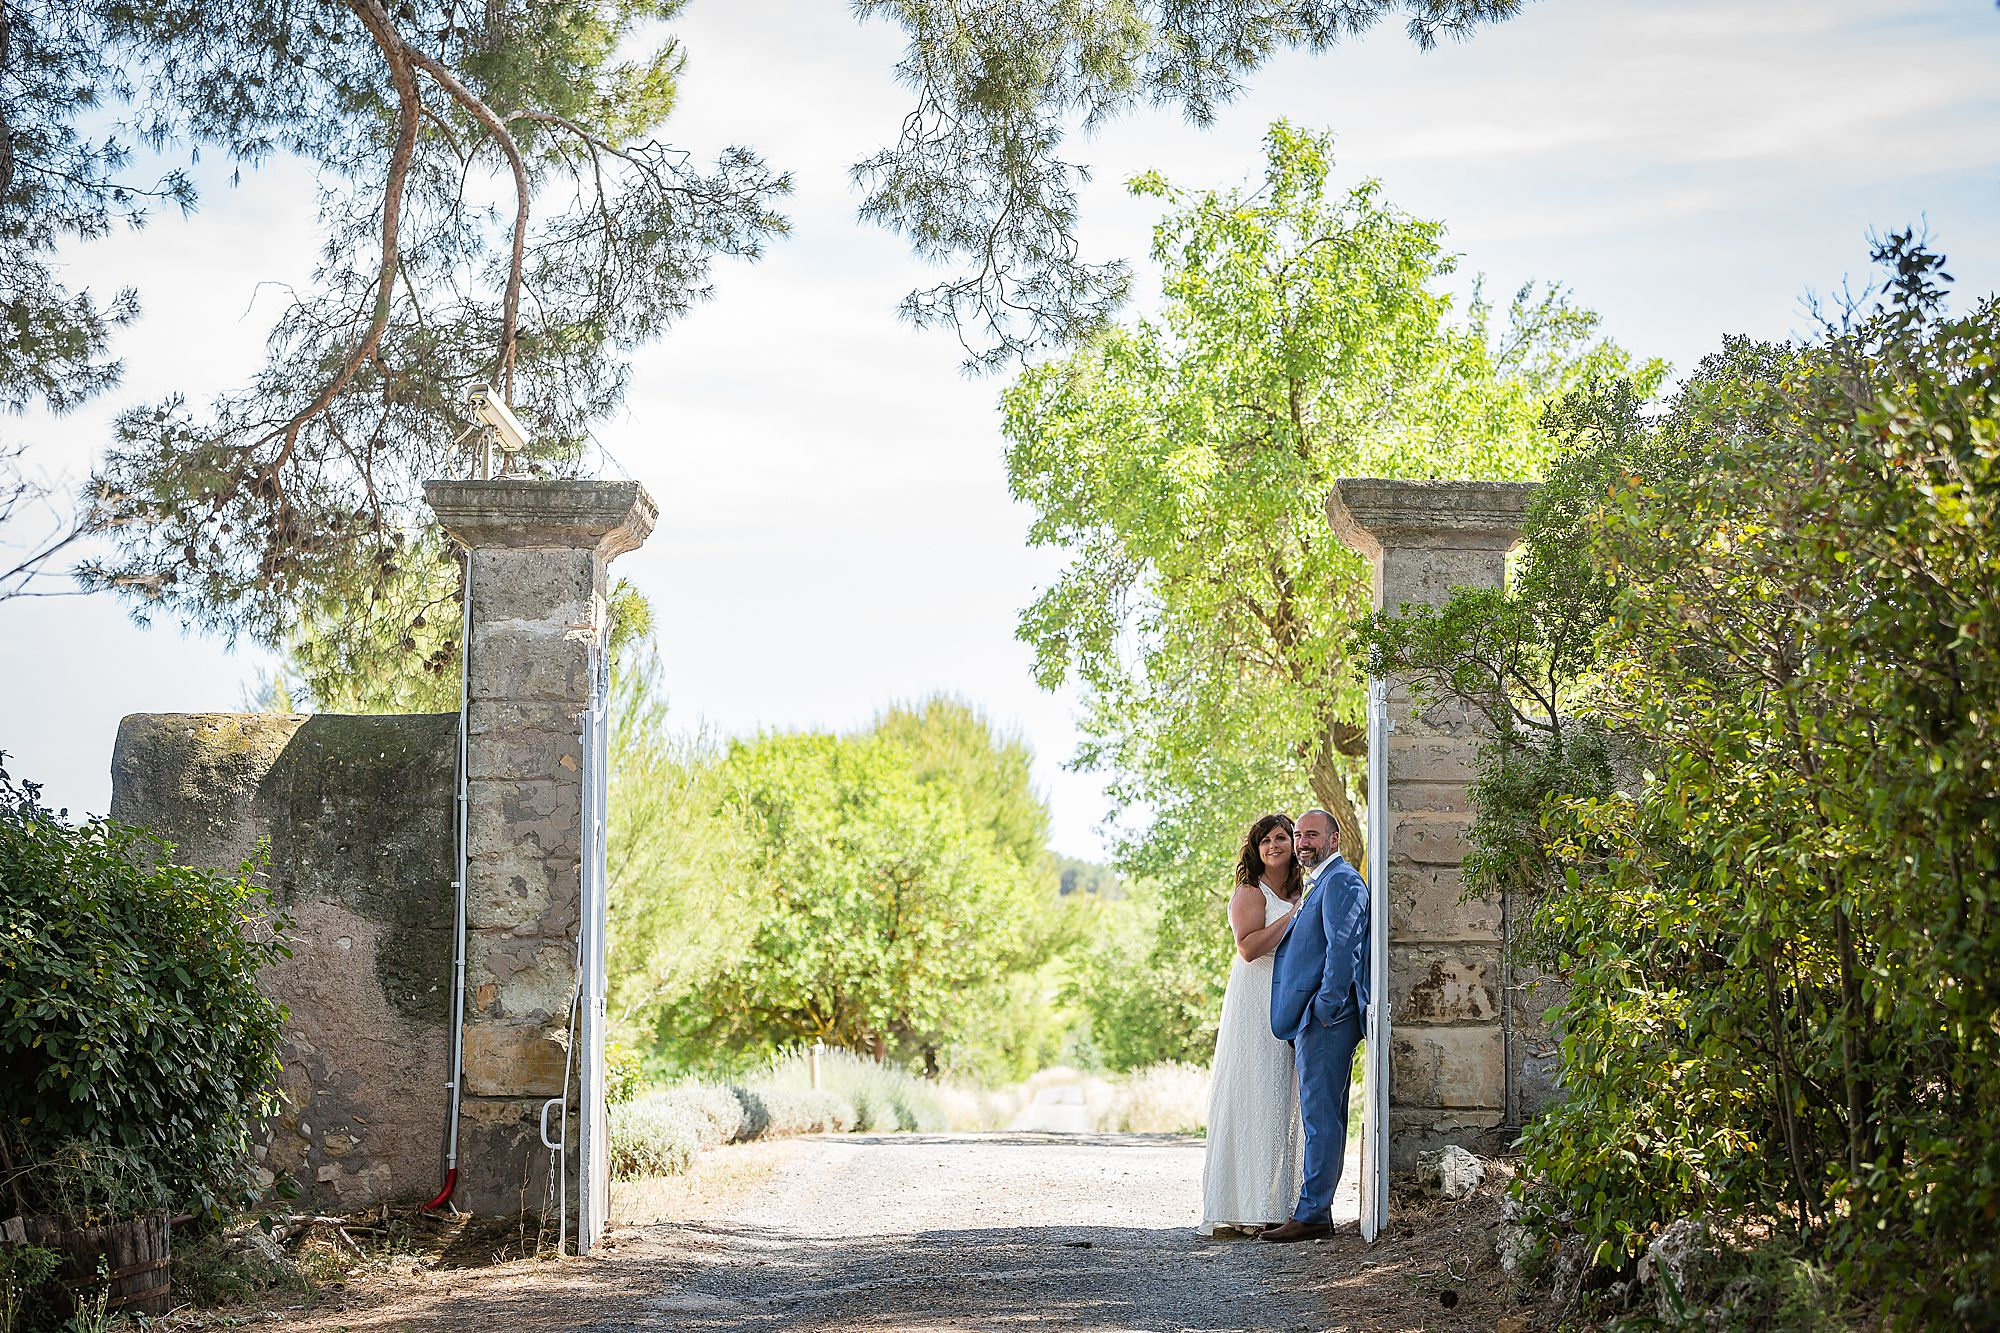 wedding photography at Domaine de la Grangette wedding